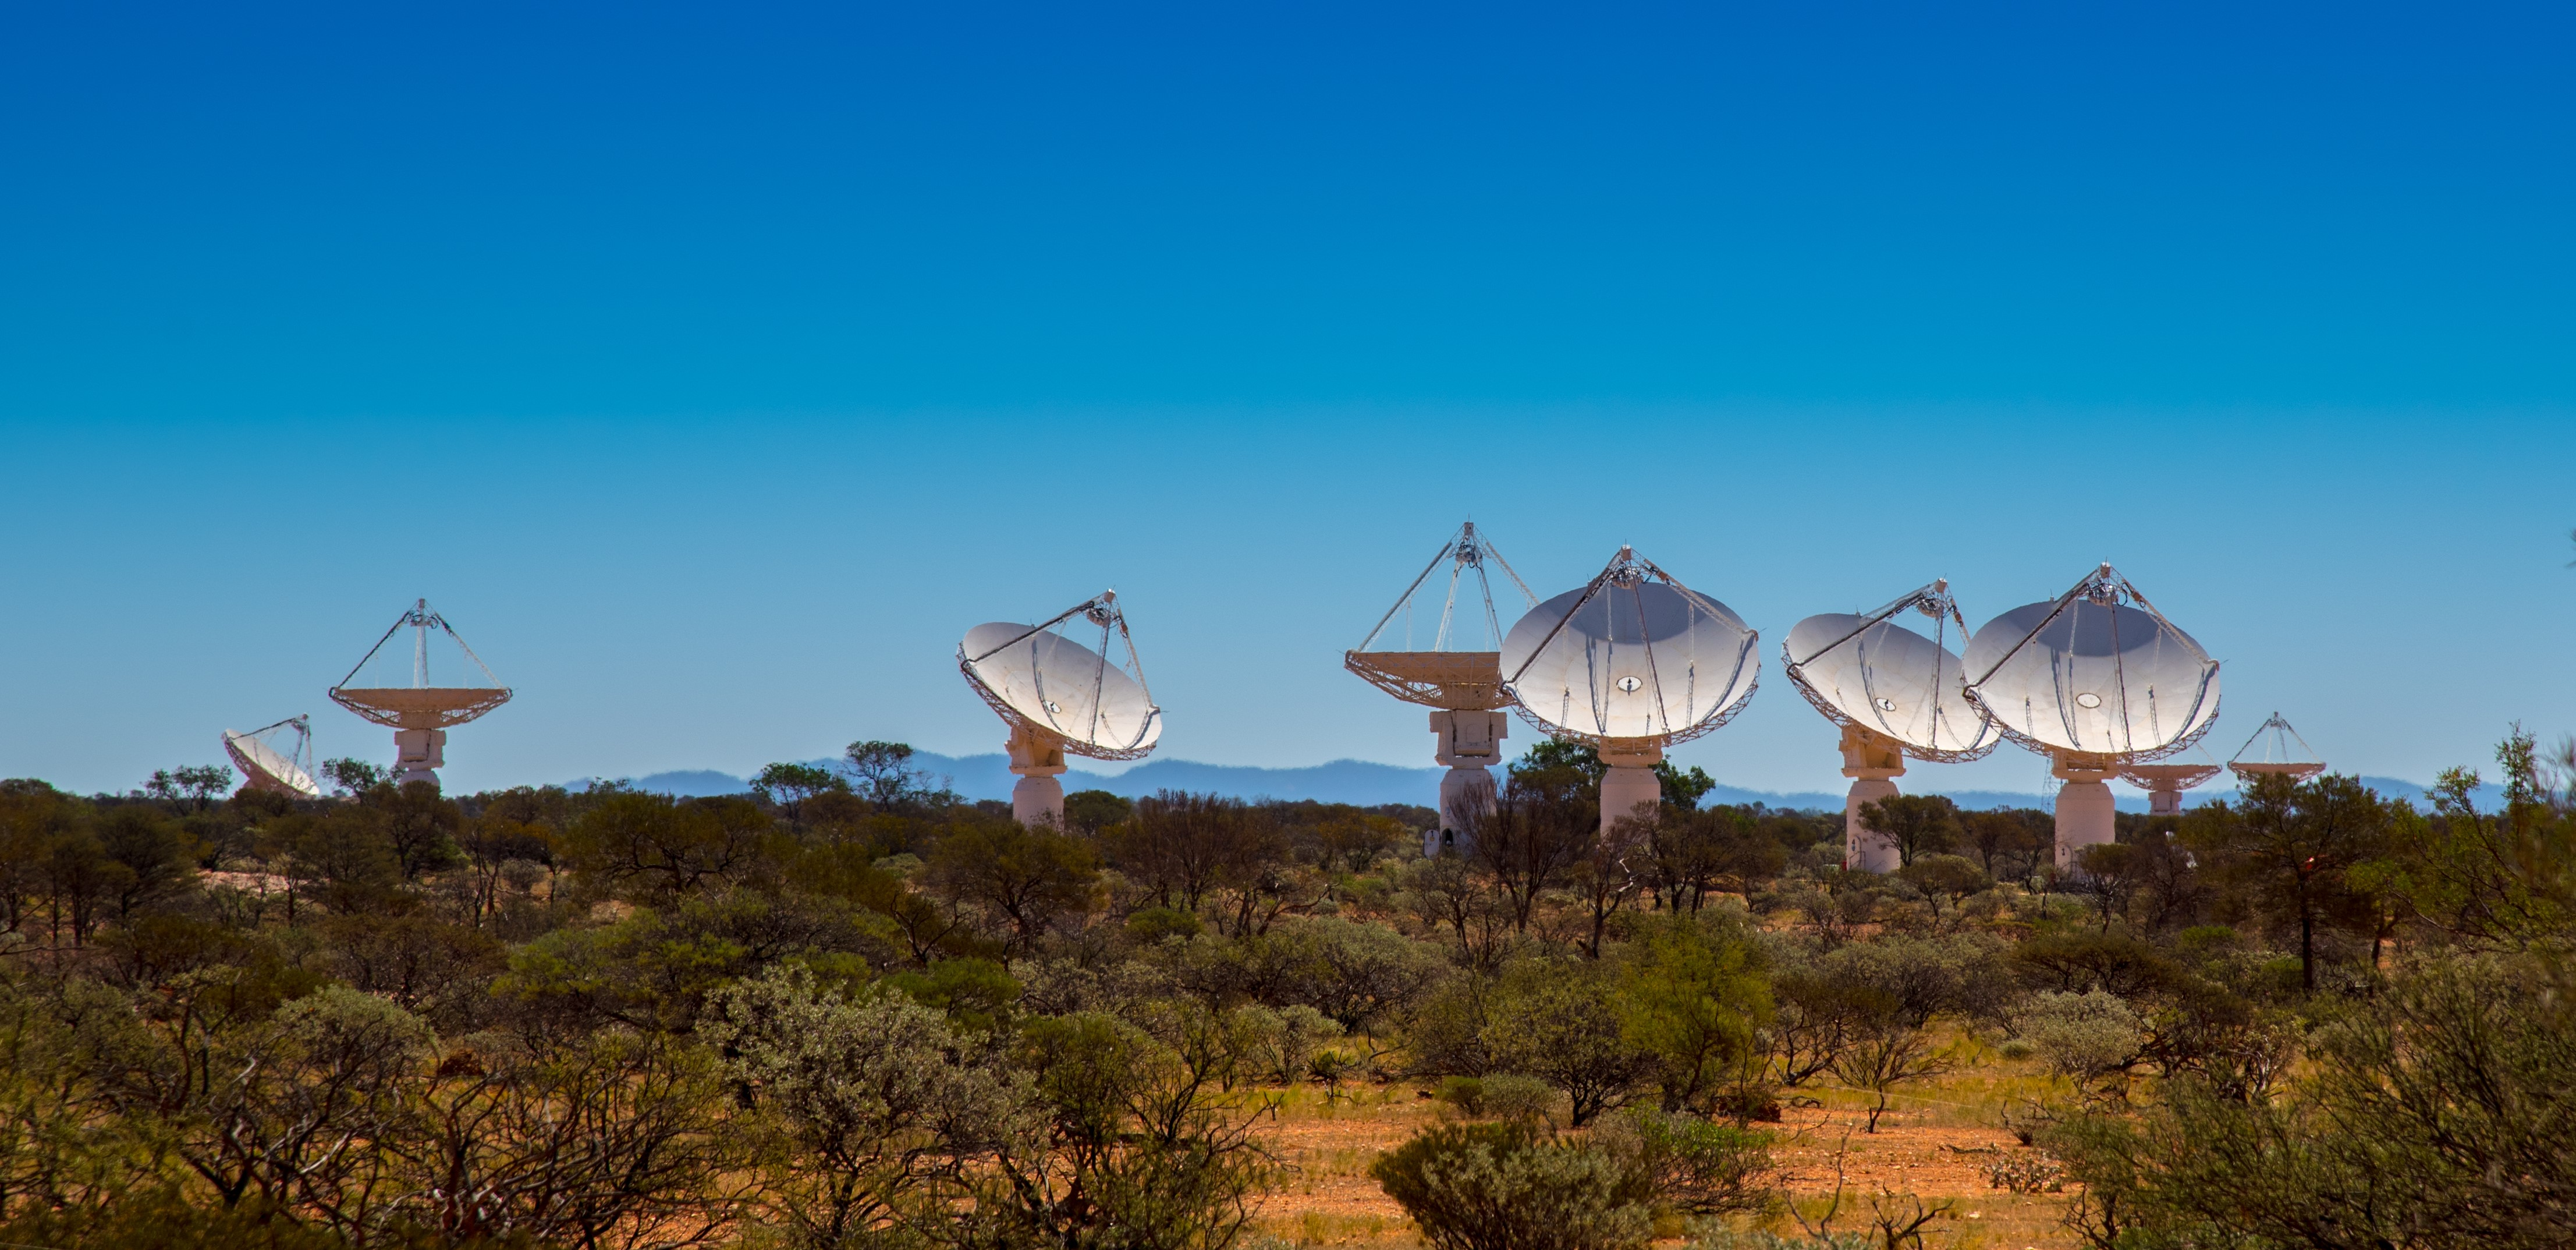 Several dishes of CSIRO's Australian Square Kilometre Array Pathfinder as seen from distance.